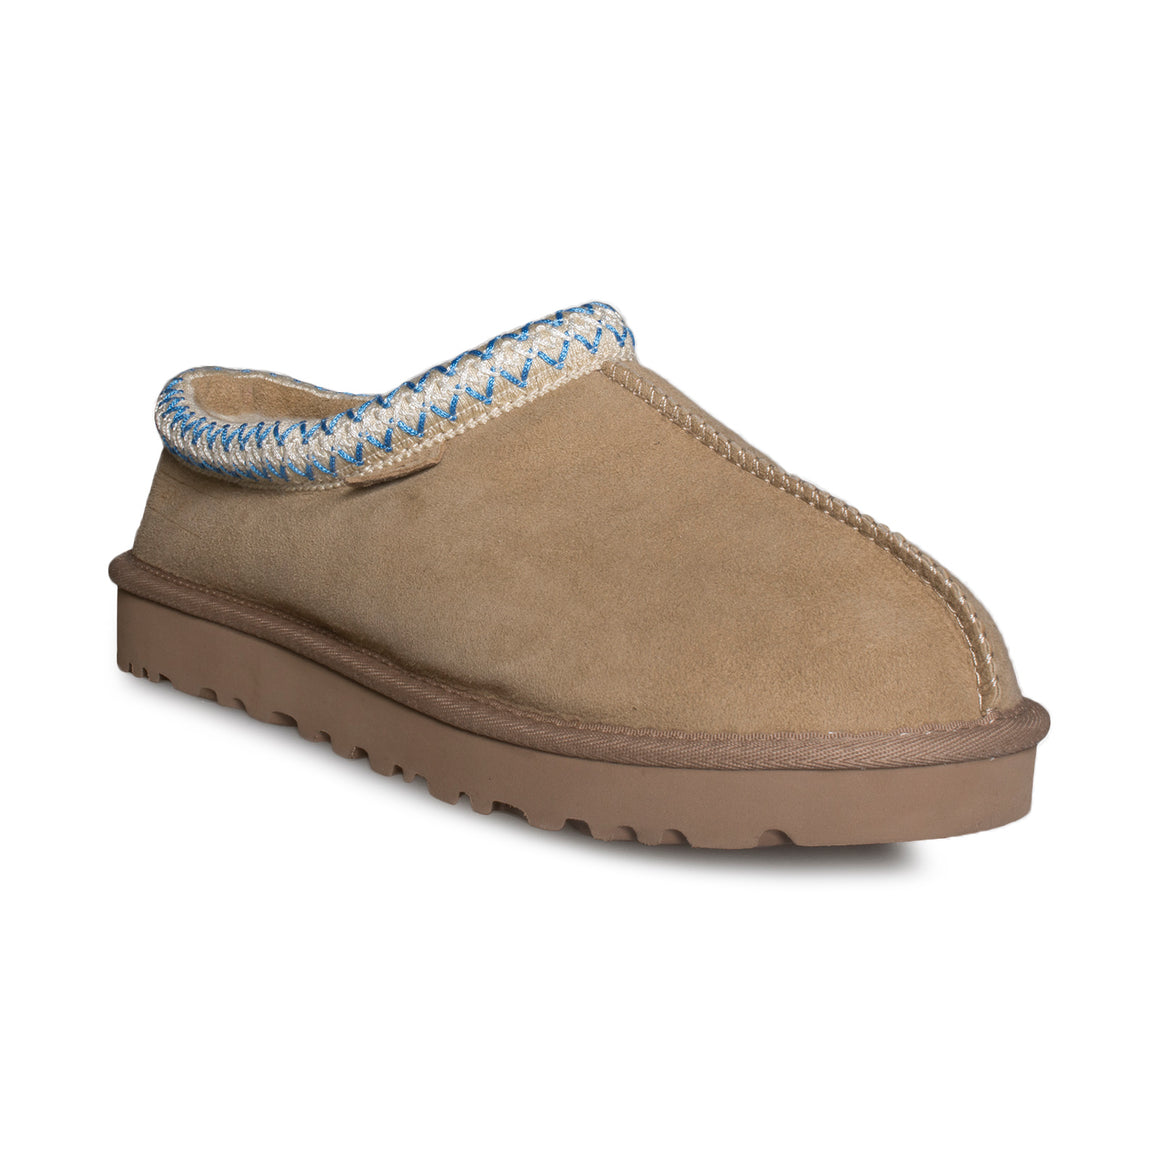 UGG Tasman 40:40:40 Sand Slippers - Men's